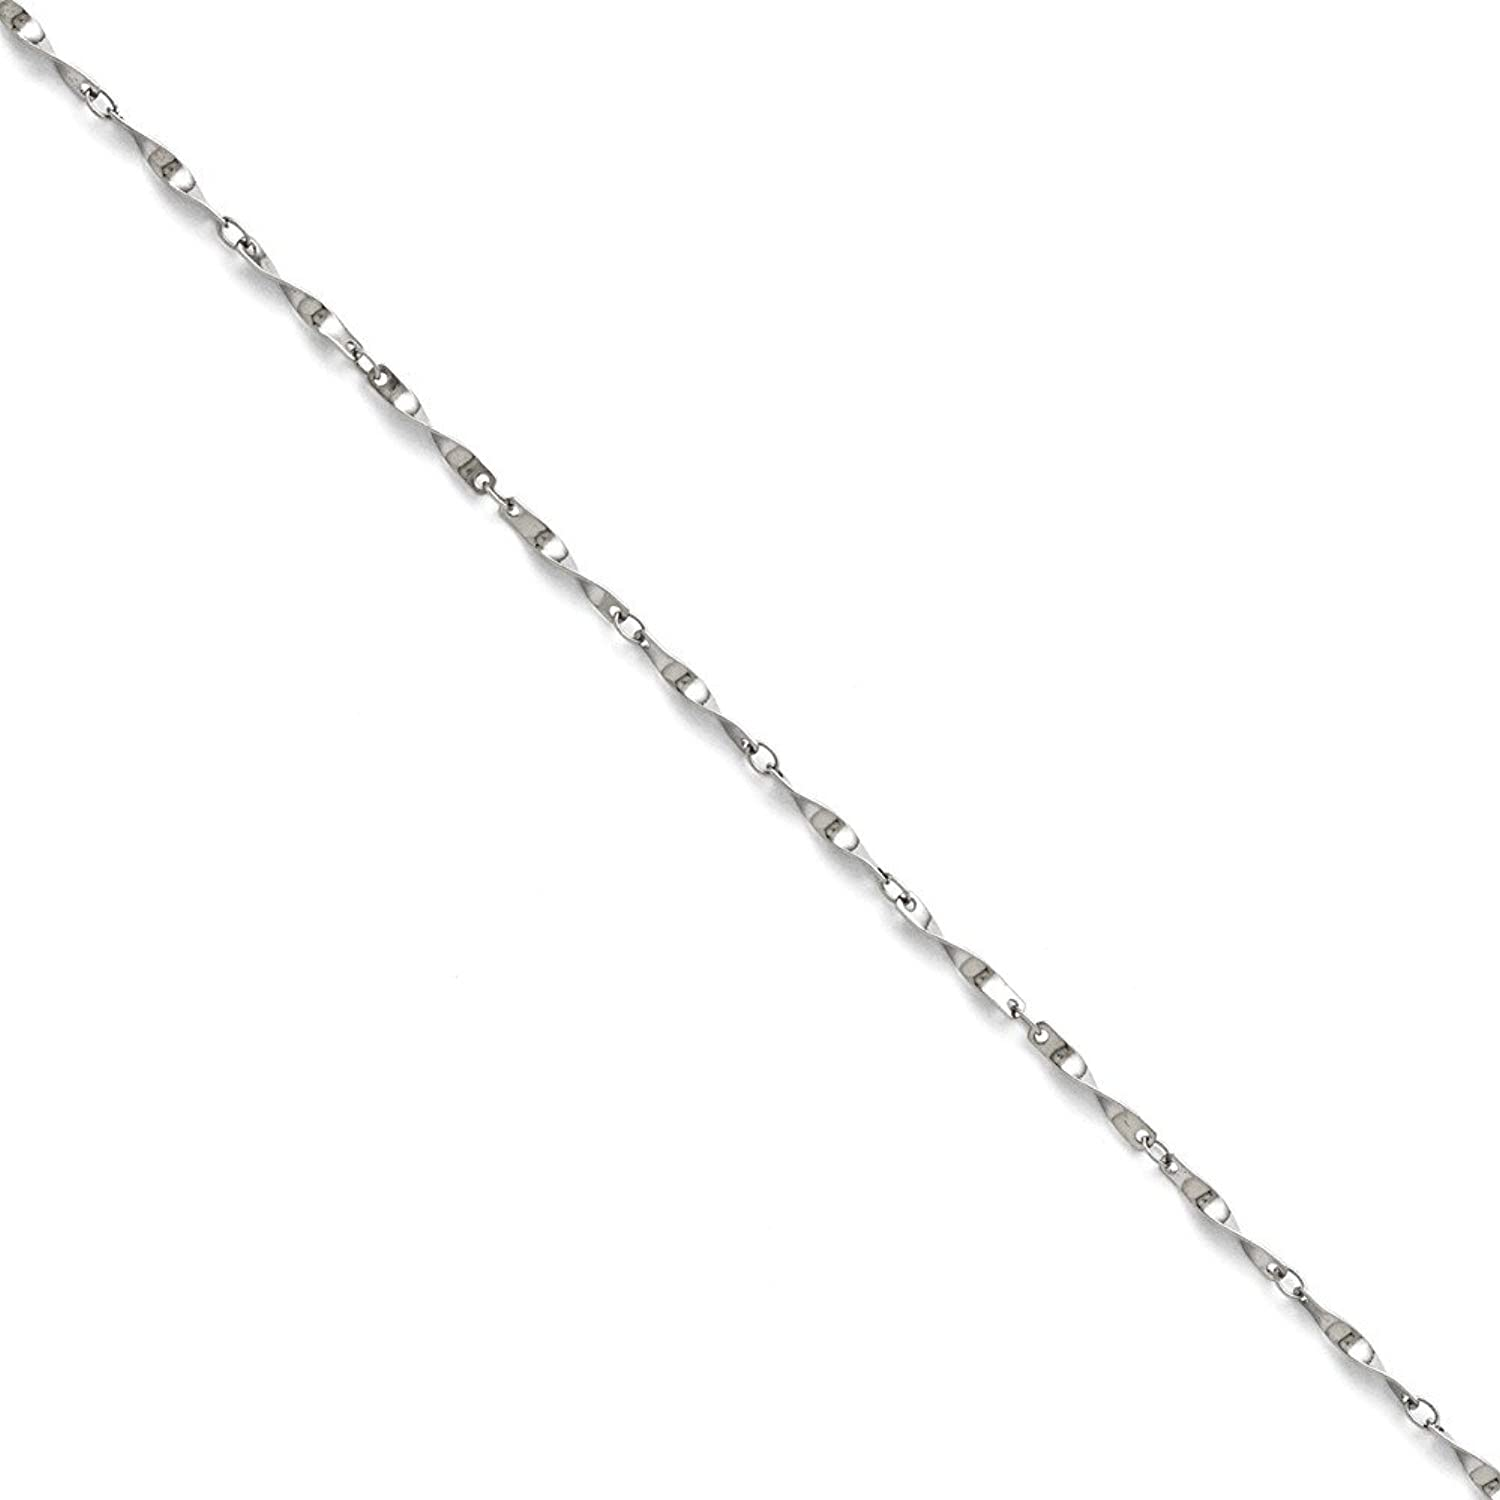 Stainless Steel Polished Fancy Link Spiral Chain Anklet 9.5 Inch